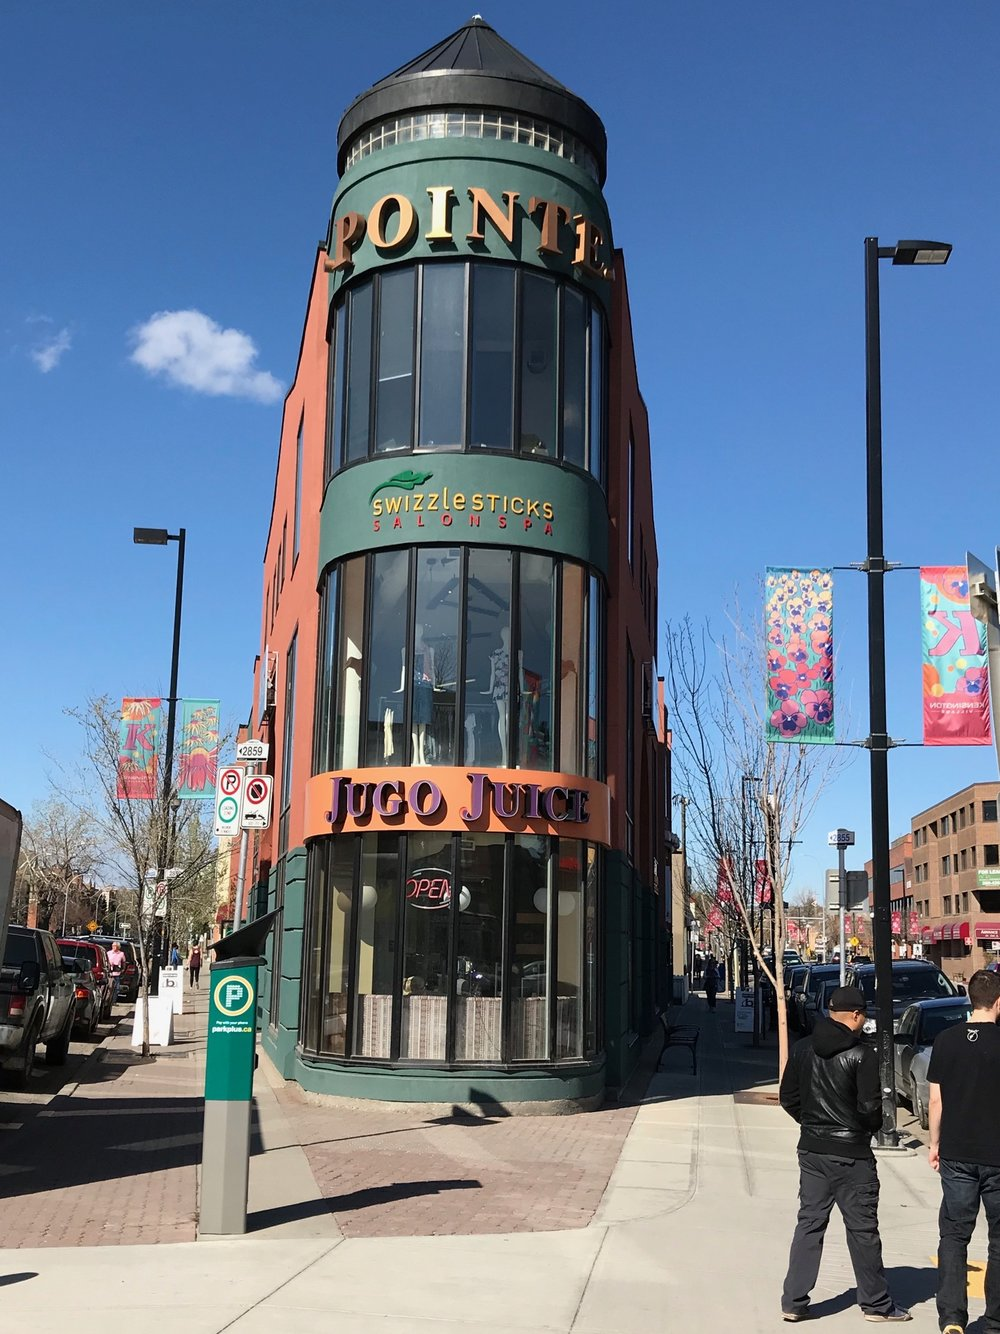 Pointe takes advantage of its triangular site to create a flatiron building.